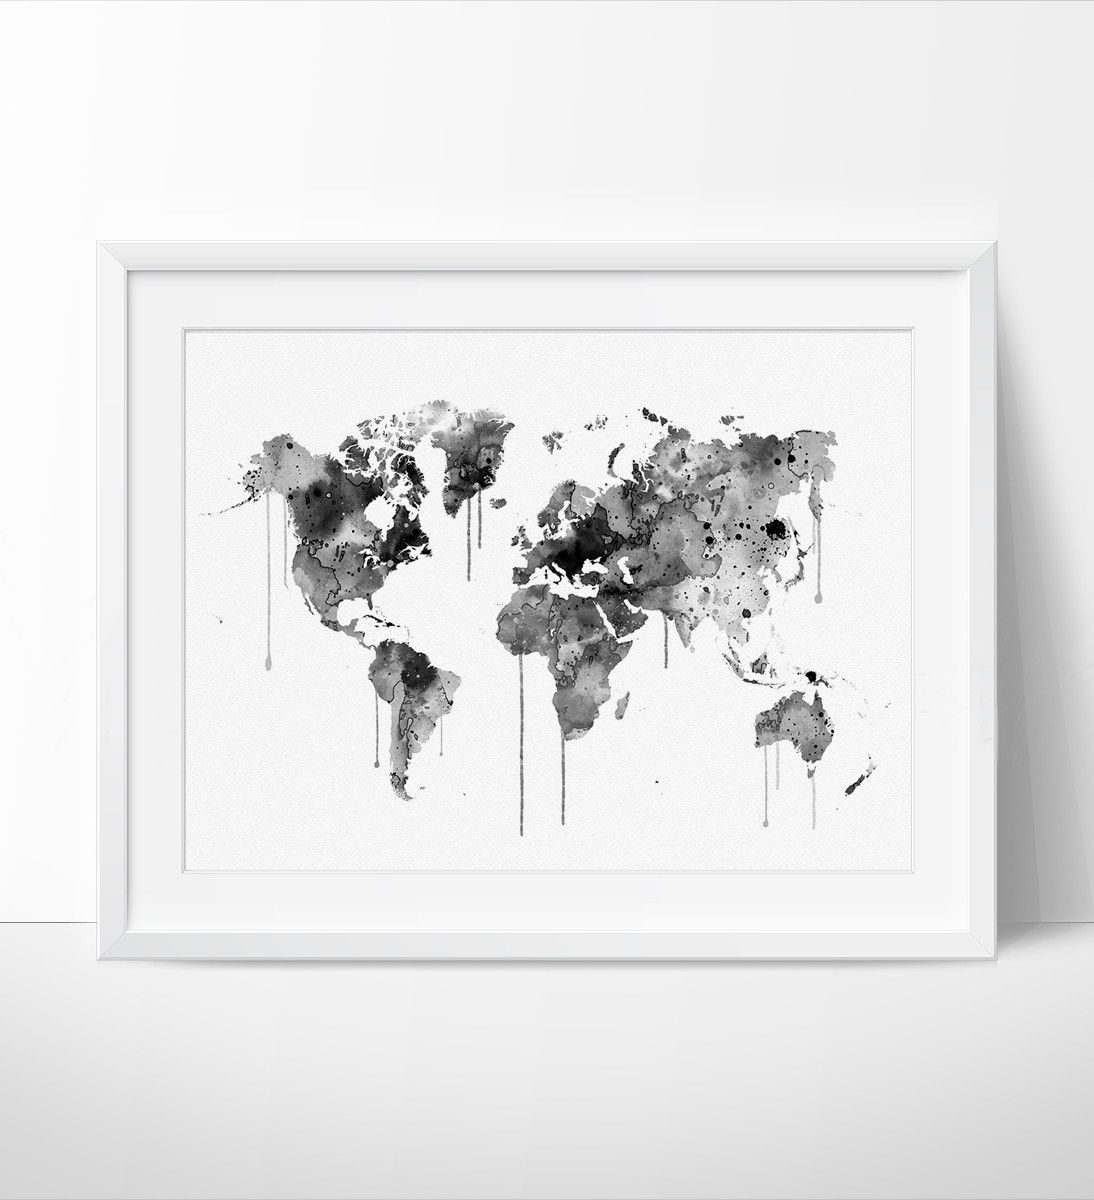 Watercolor world map art print watercolor map wall art watercolor watercolor world map art printsplash world map wall art watercolor world map poster large map art size standard sizes fit in frames found in big gumiabroncs Images